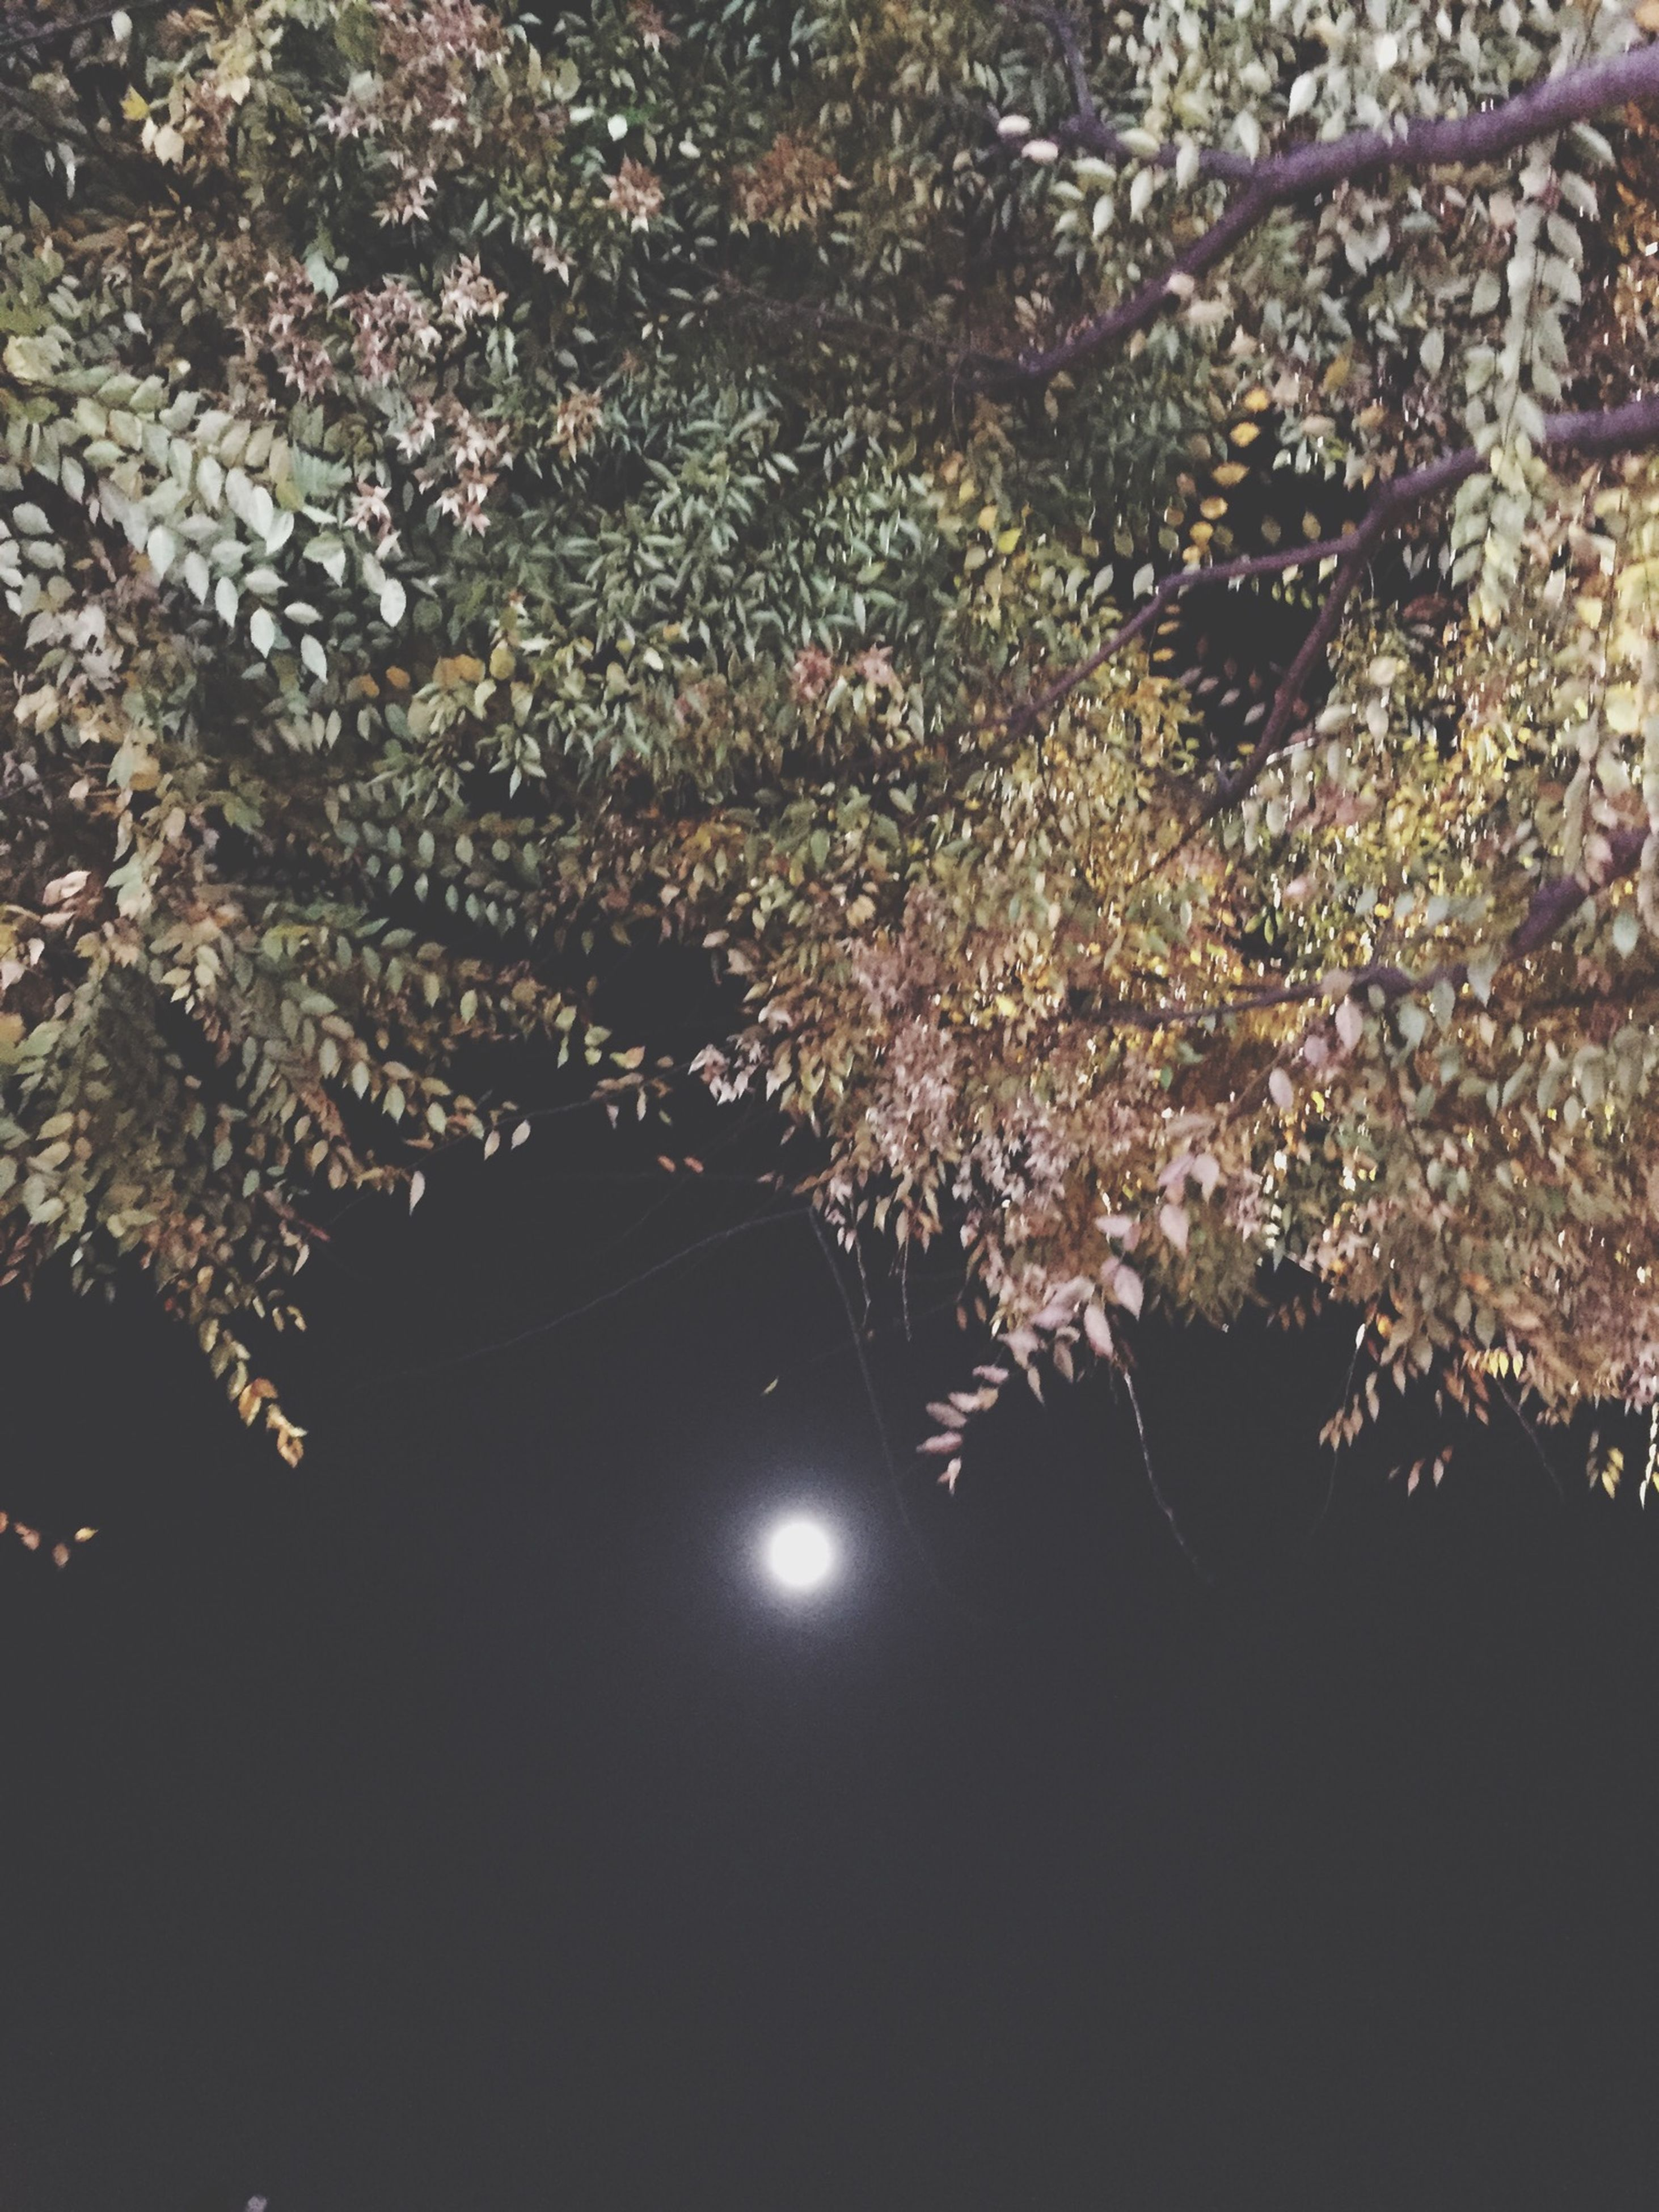 tree, low angle view, branch, growth, beauty in nature, night, nature, outdoors, illuminated, tranquility, no people, flower, fragility, close-up, sky, clear sky, scenics, freshness, backgrounds